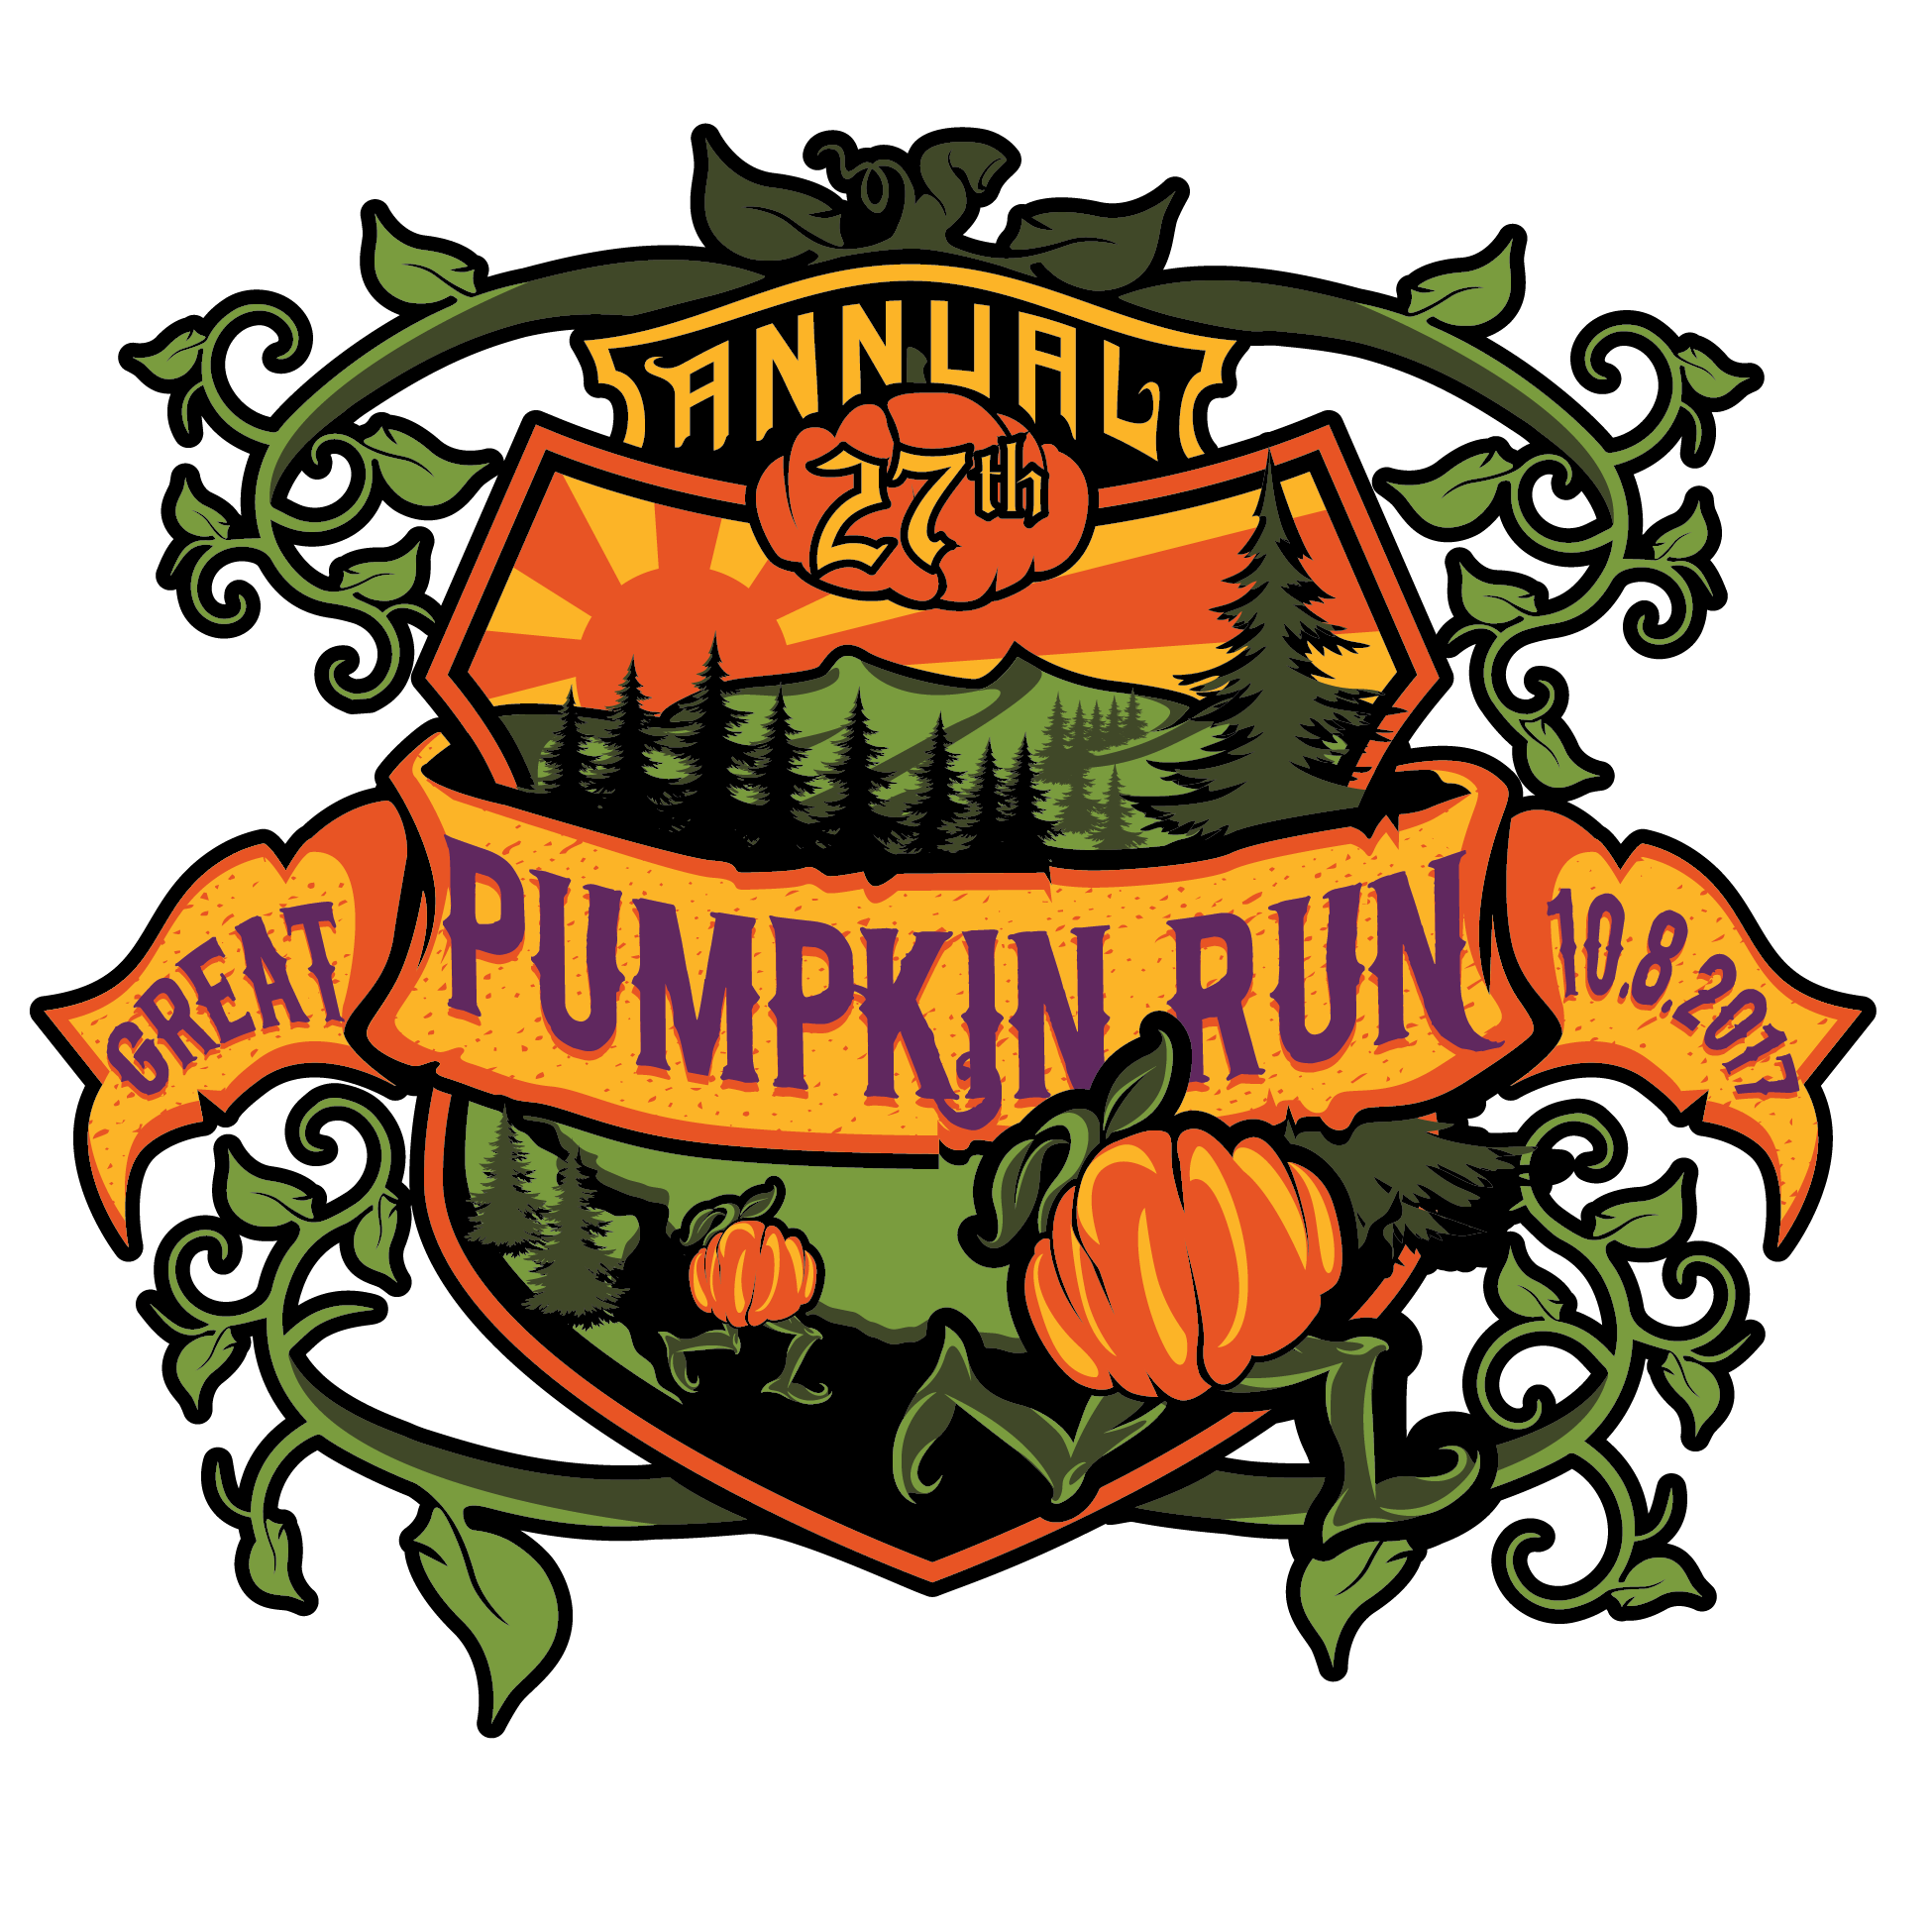 Roller skating pumpkin clipart vector freeuse library 2017 | The Great Pumpkin Run 2017 — Race Roster vector freeuse library